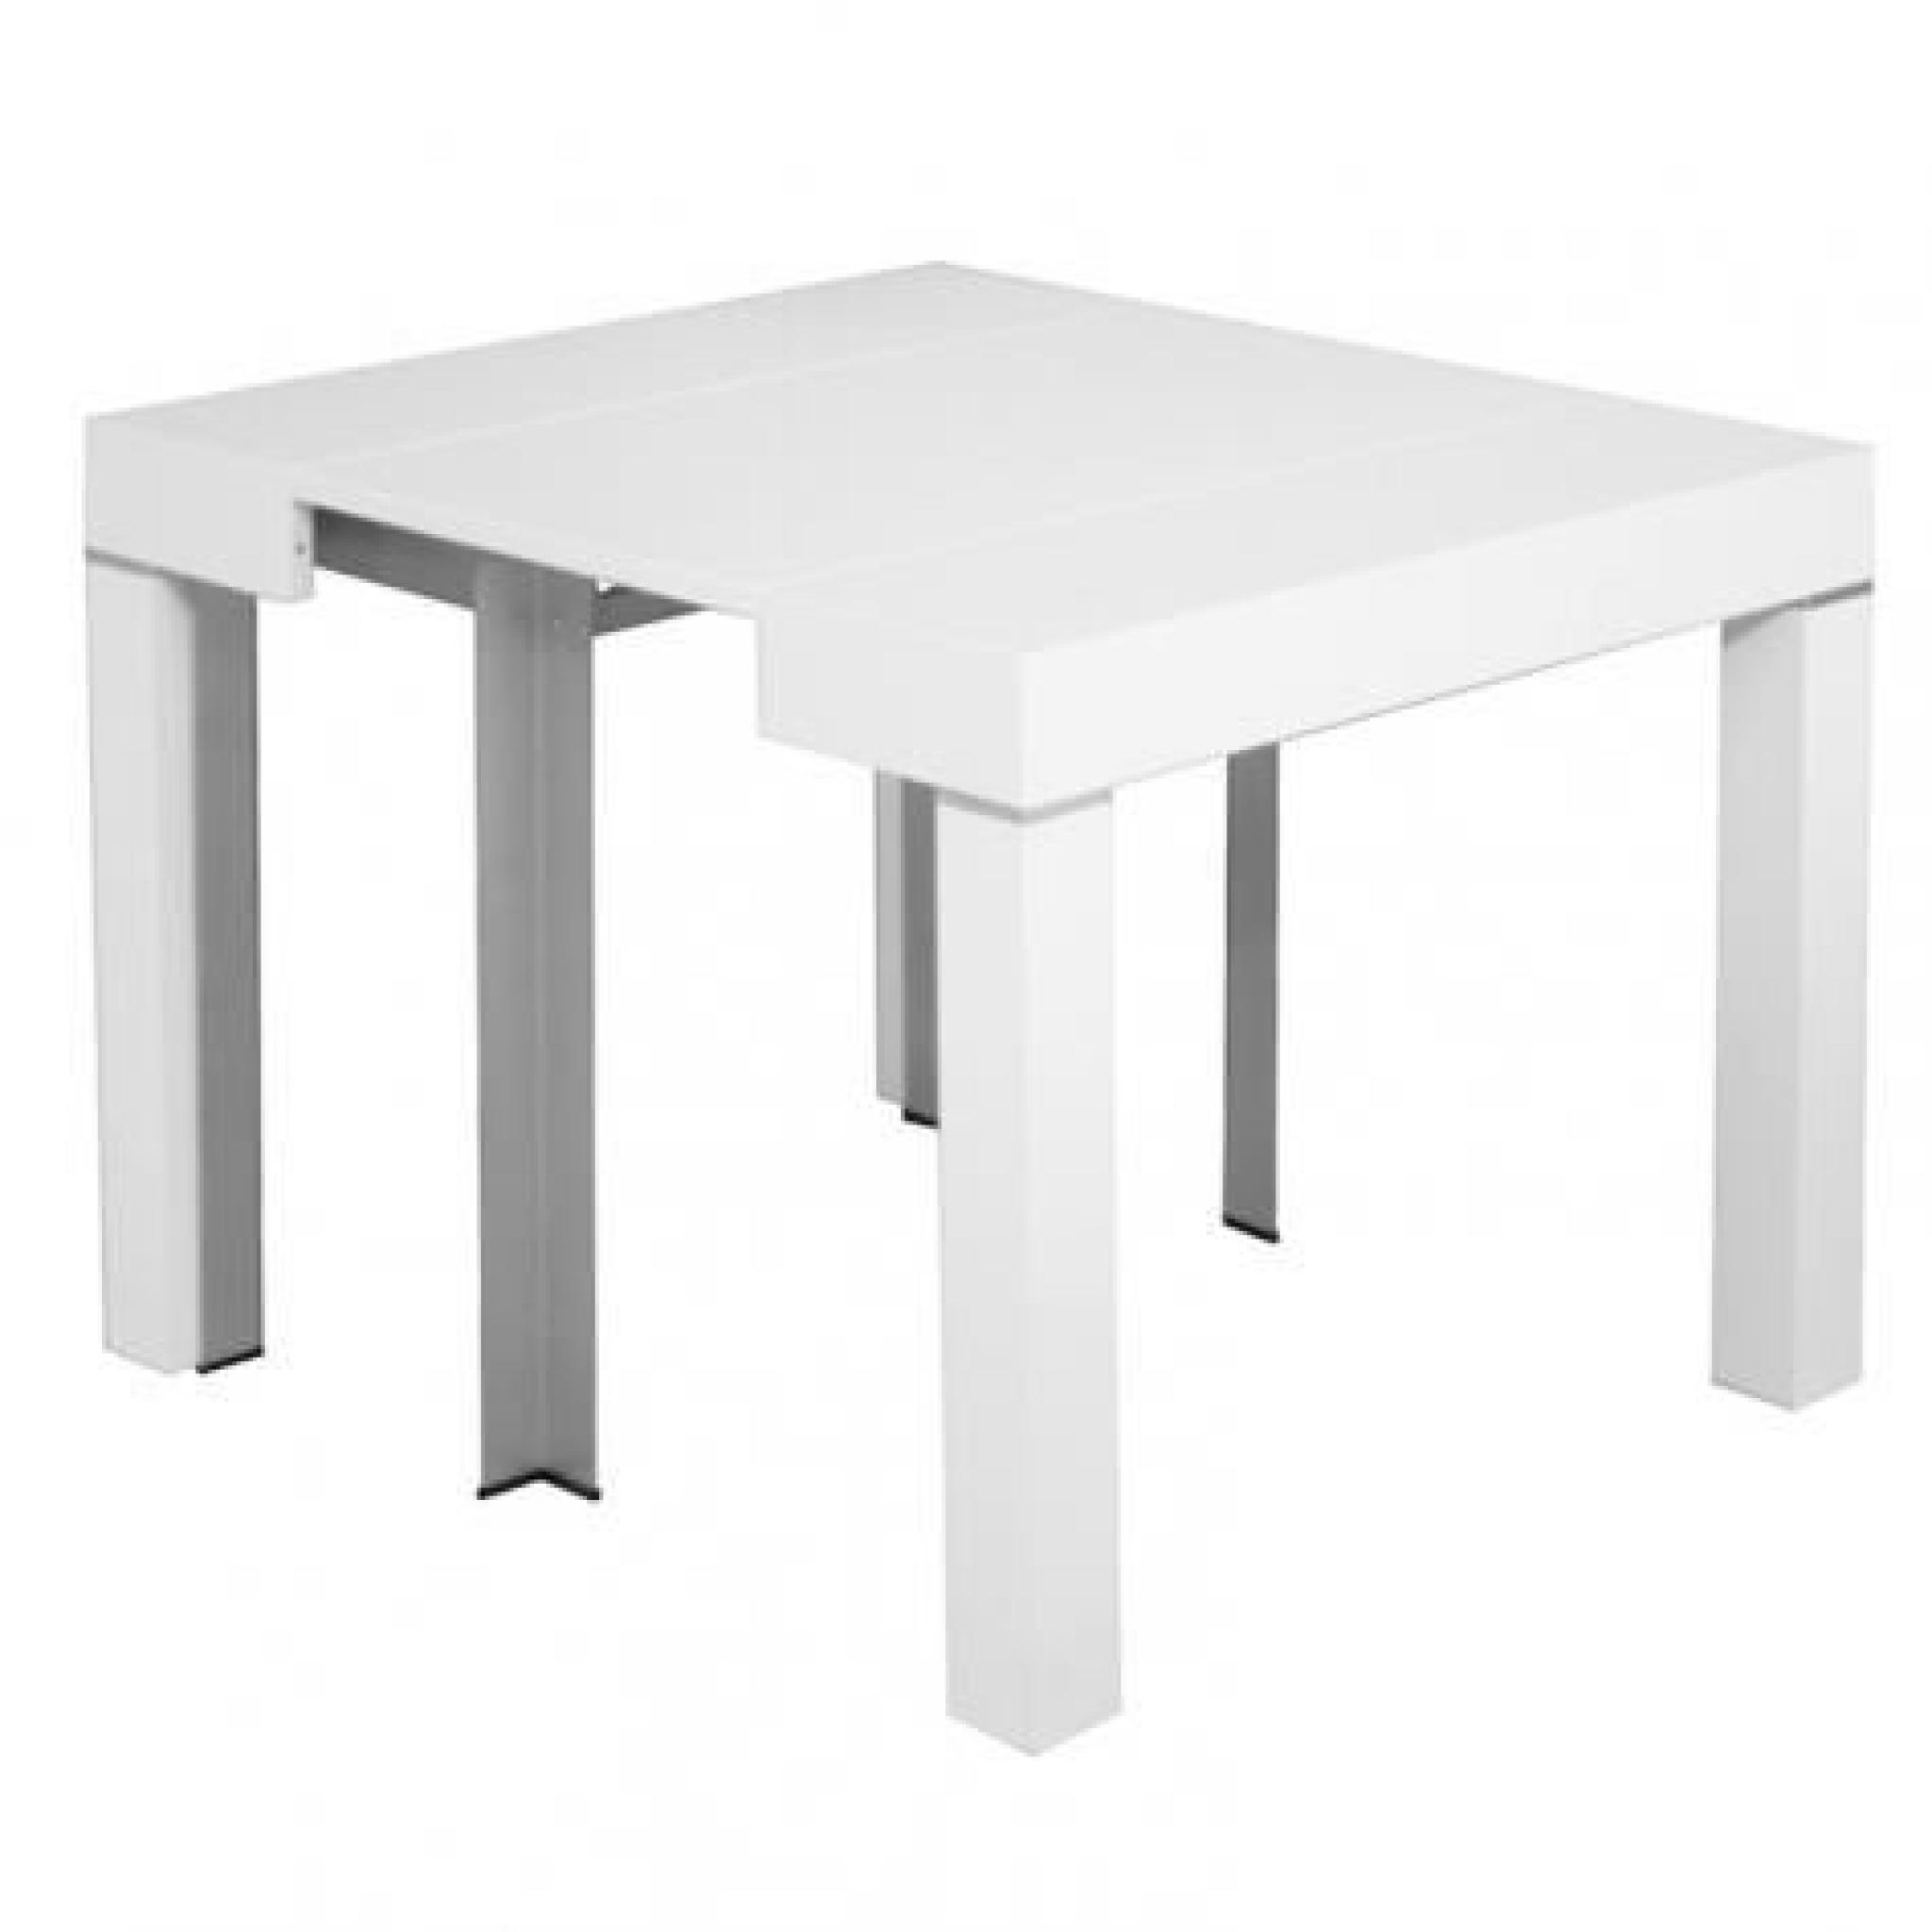 Table console extensible blanche laqu e 4 rallonges alesia for Table a rallonge console